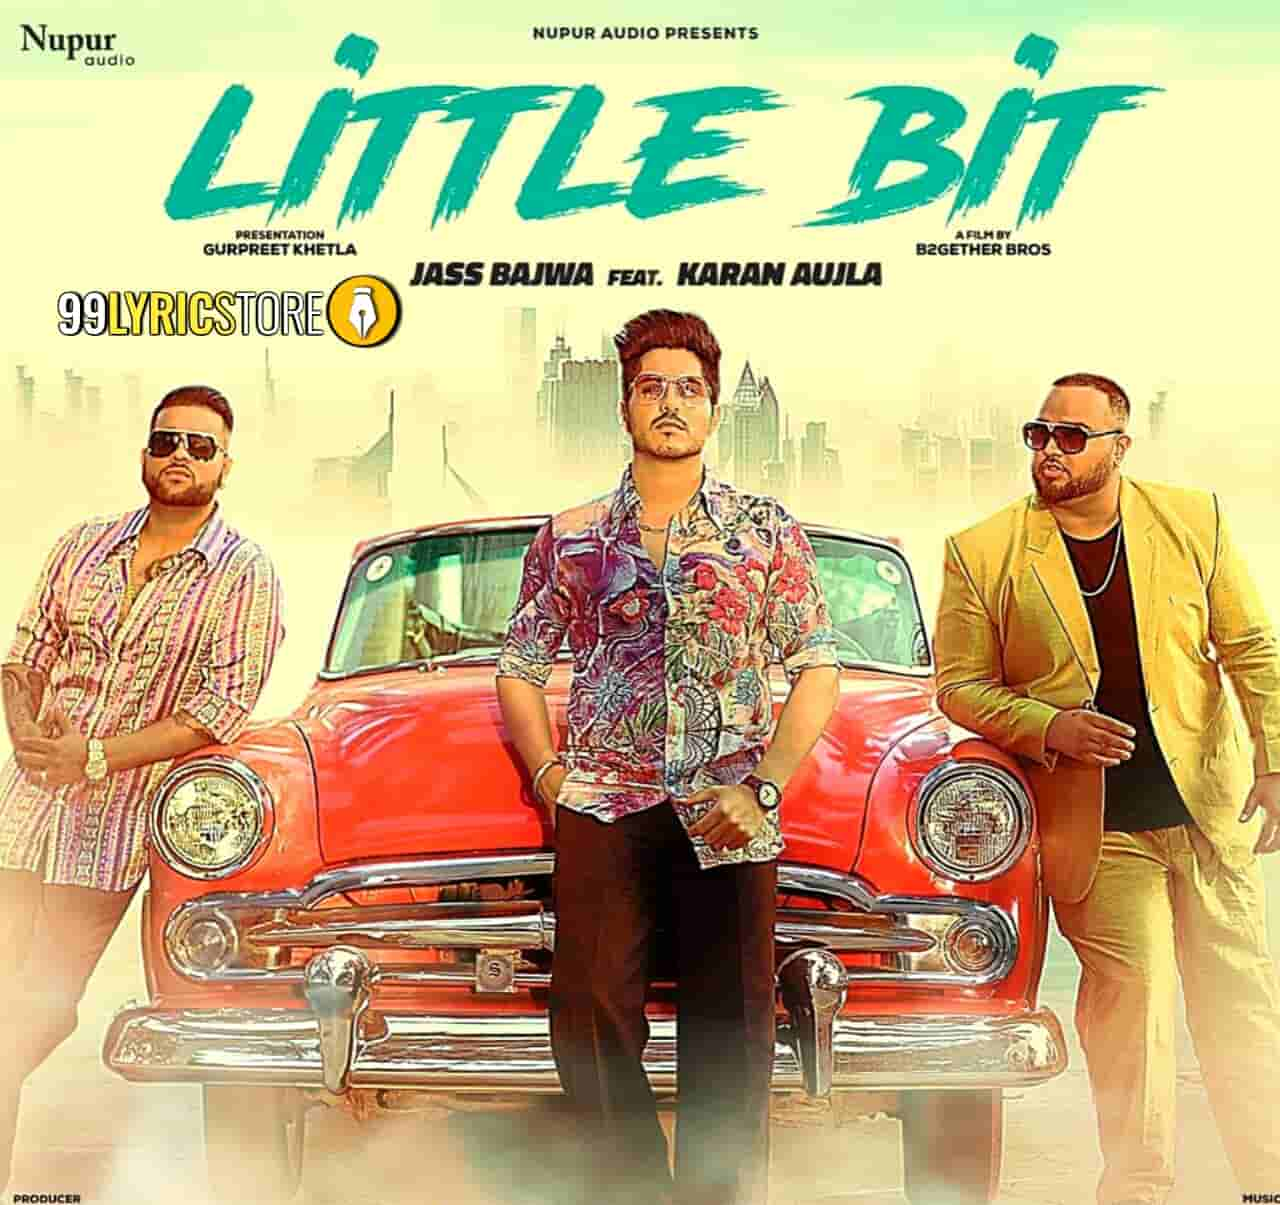 Little Bit Punjabi Song Sung by Jass Bajwa ft Karan Aujla